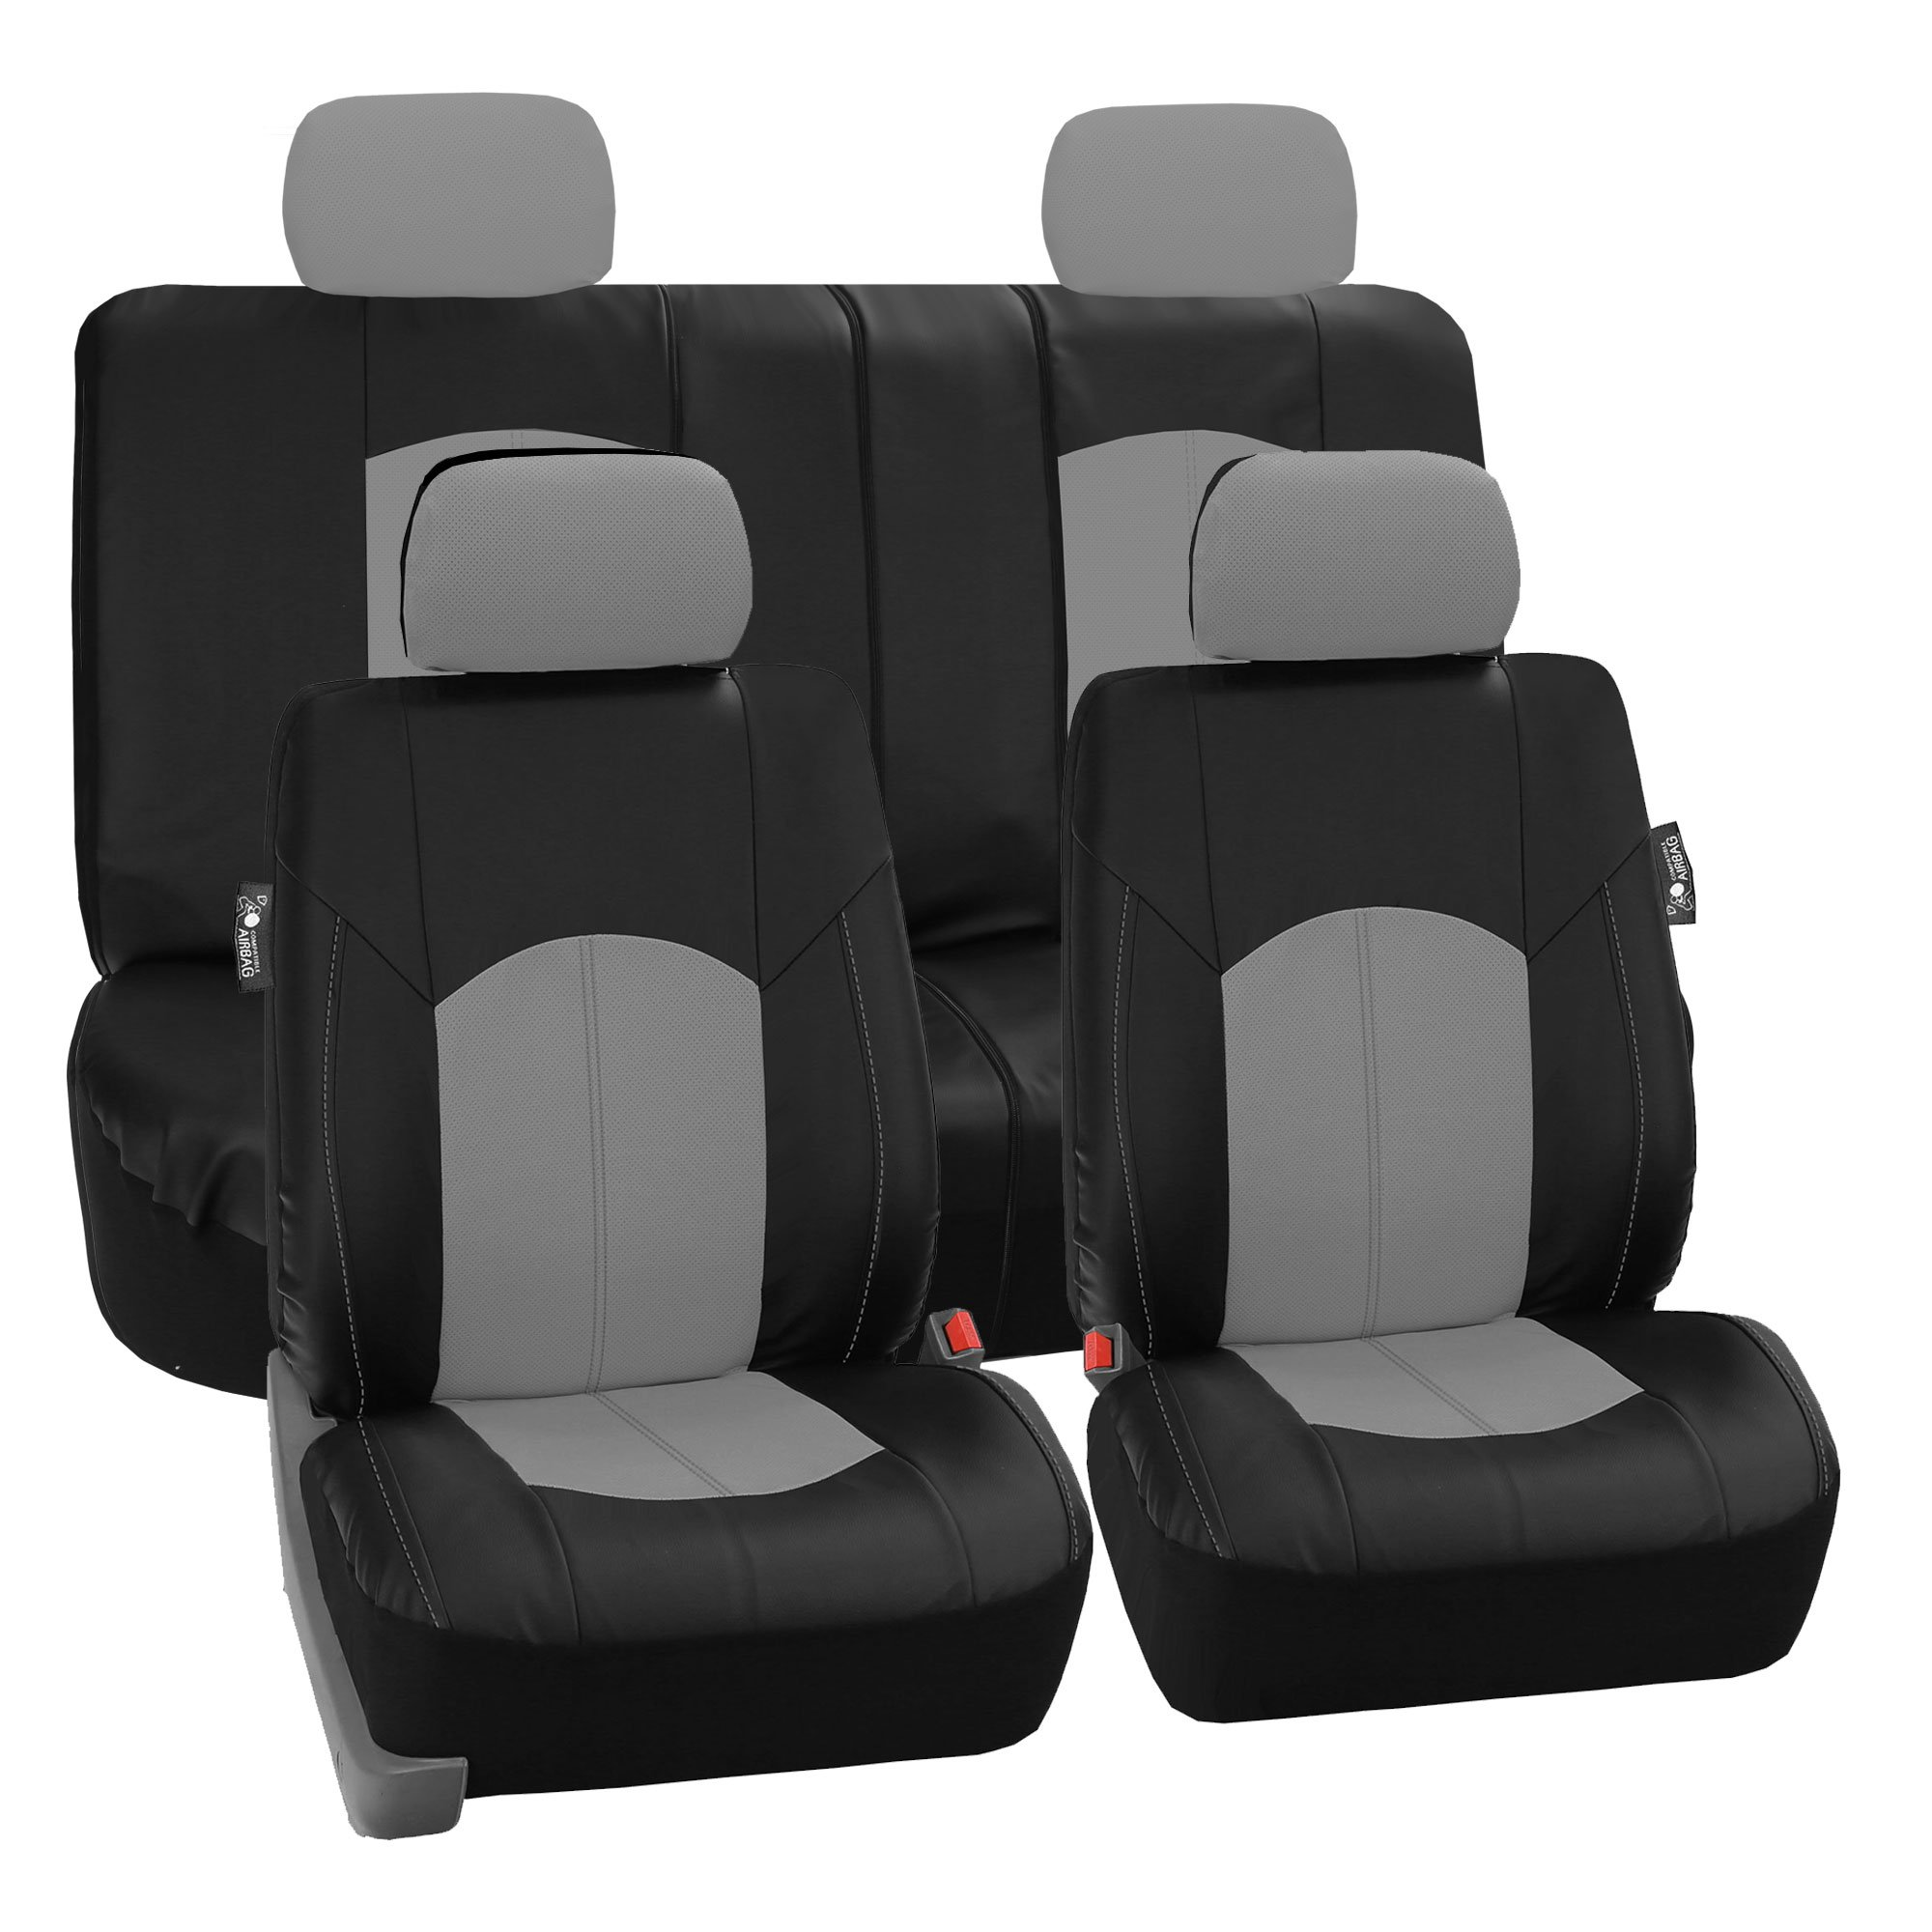 FH Group PU008114GRAYBLACK - Highest Grade Faux Leather Seat Covers